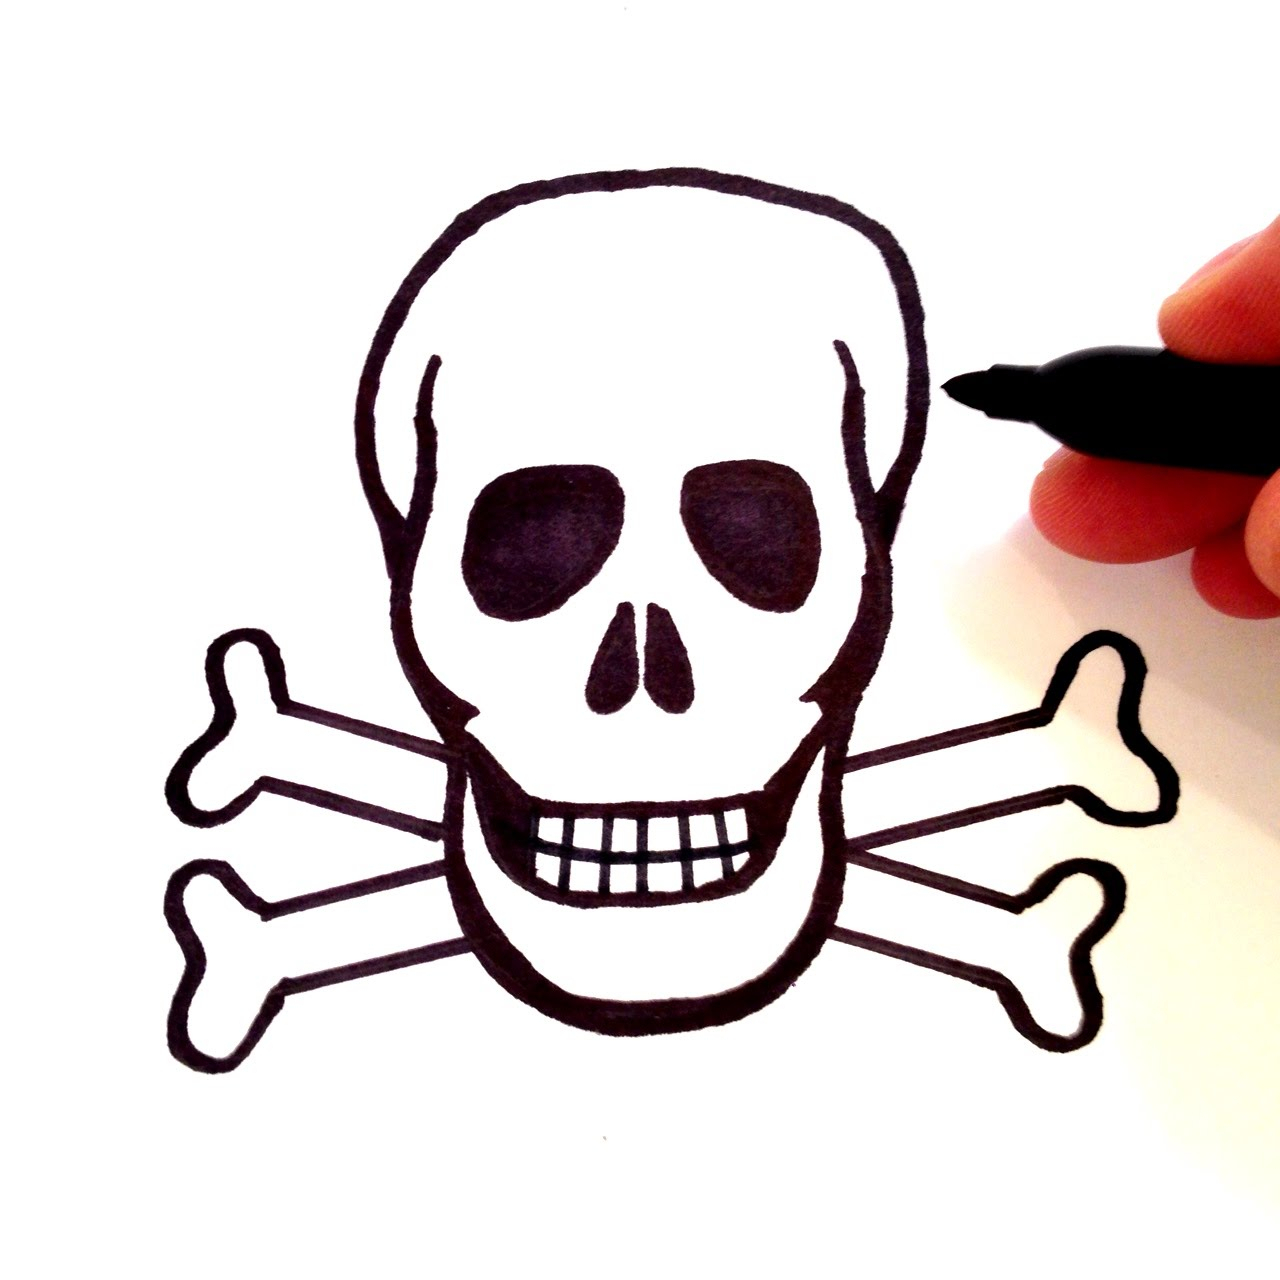 1280x1280 How To Draw A Skull And Crossbones Easy